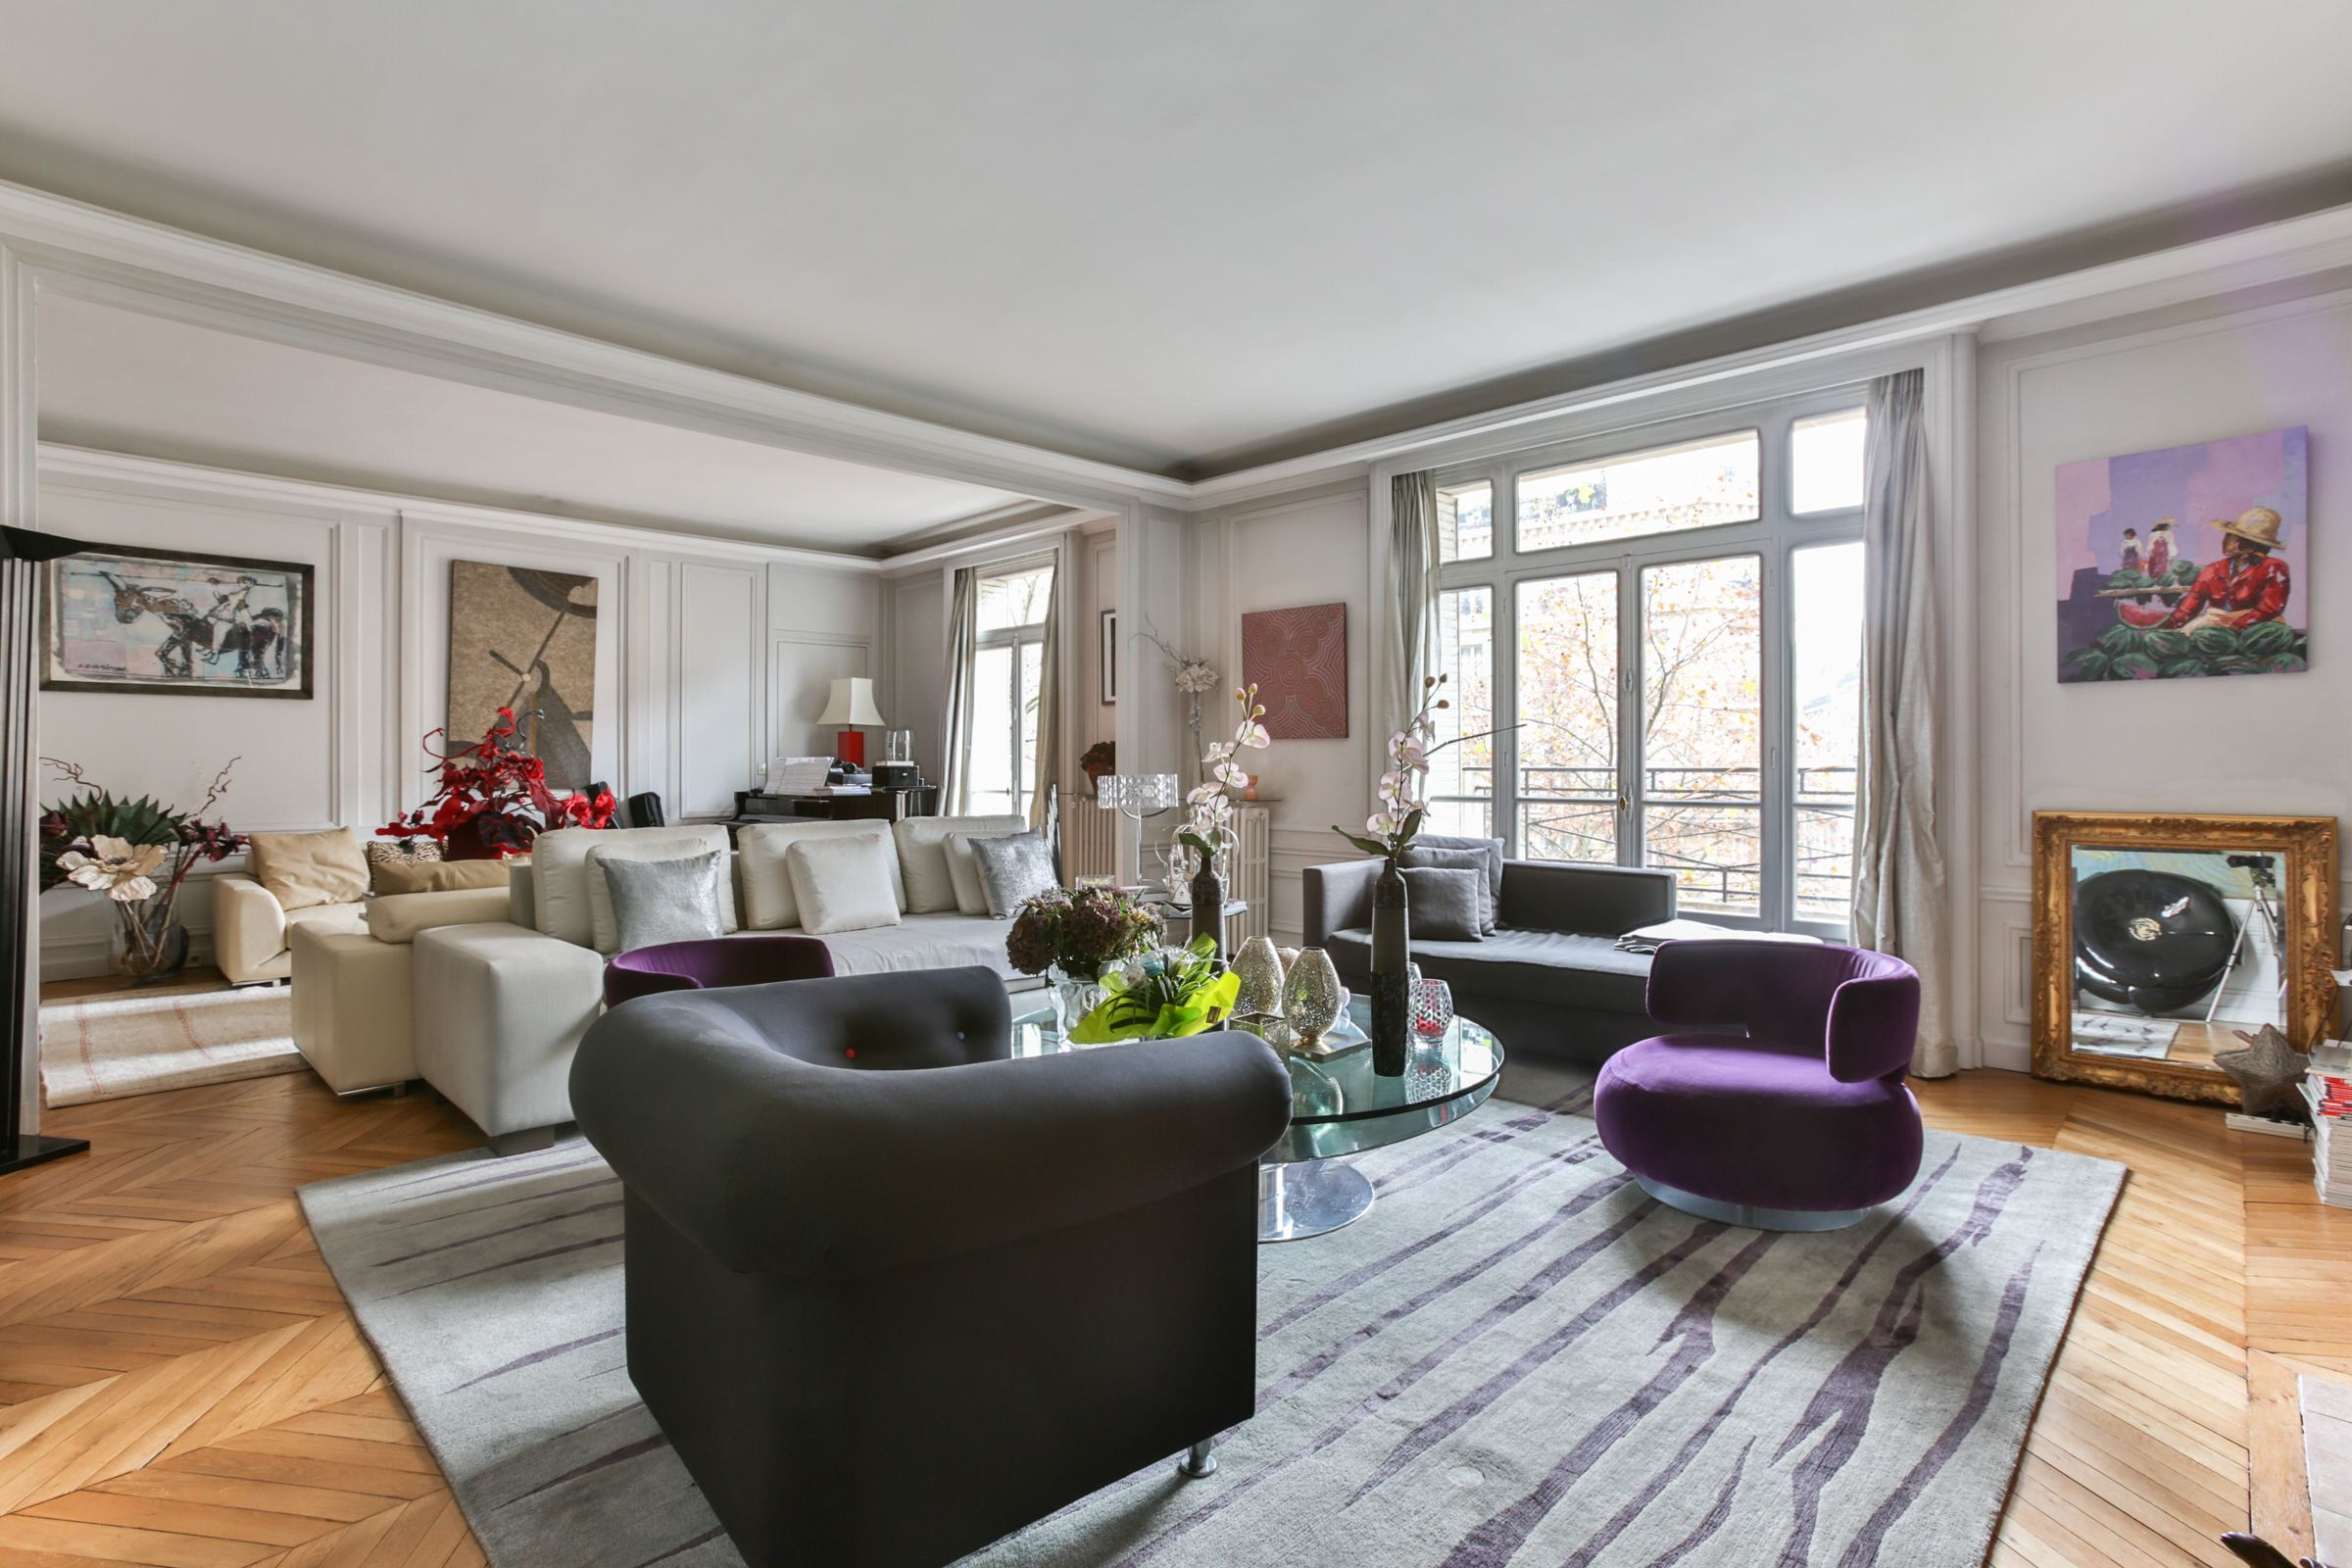 公寓 為 出售 在 Paris 8 - Ternes Monceau - A 7 rooms apartment, lots of charm. Paris, 巴黎, 75008 法國